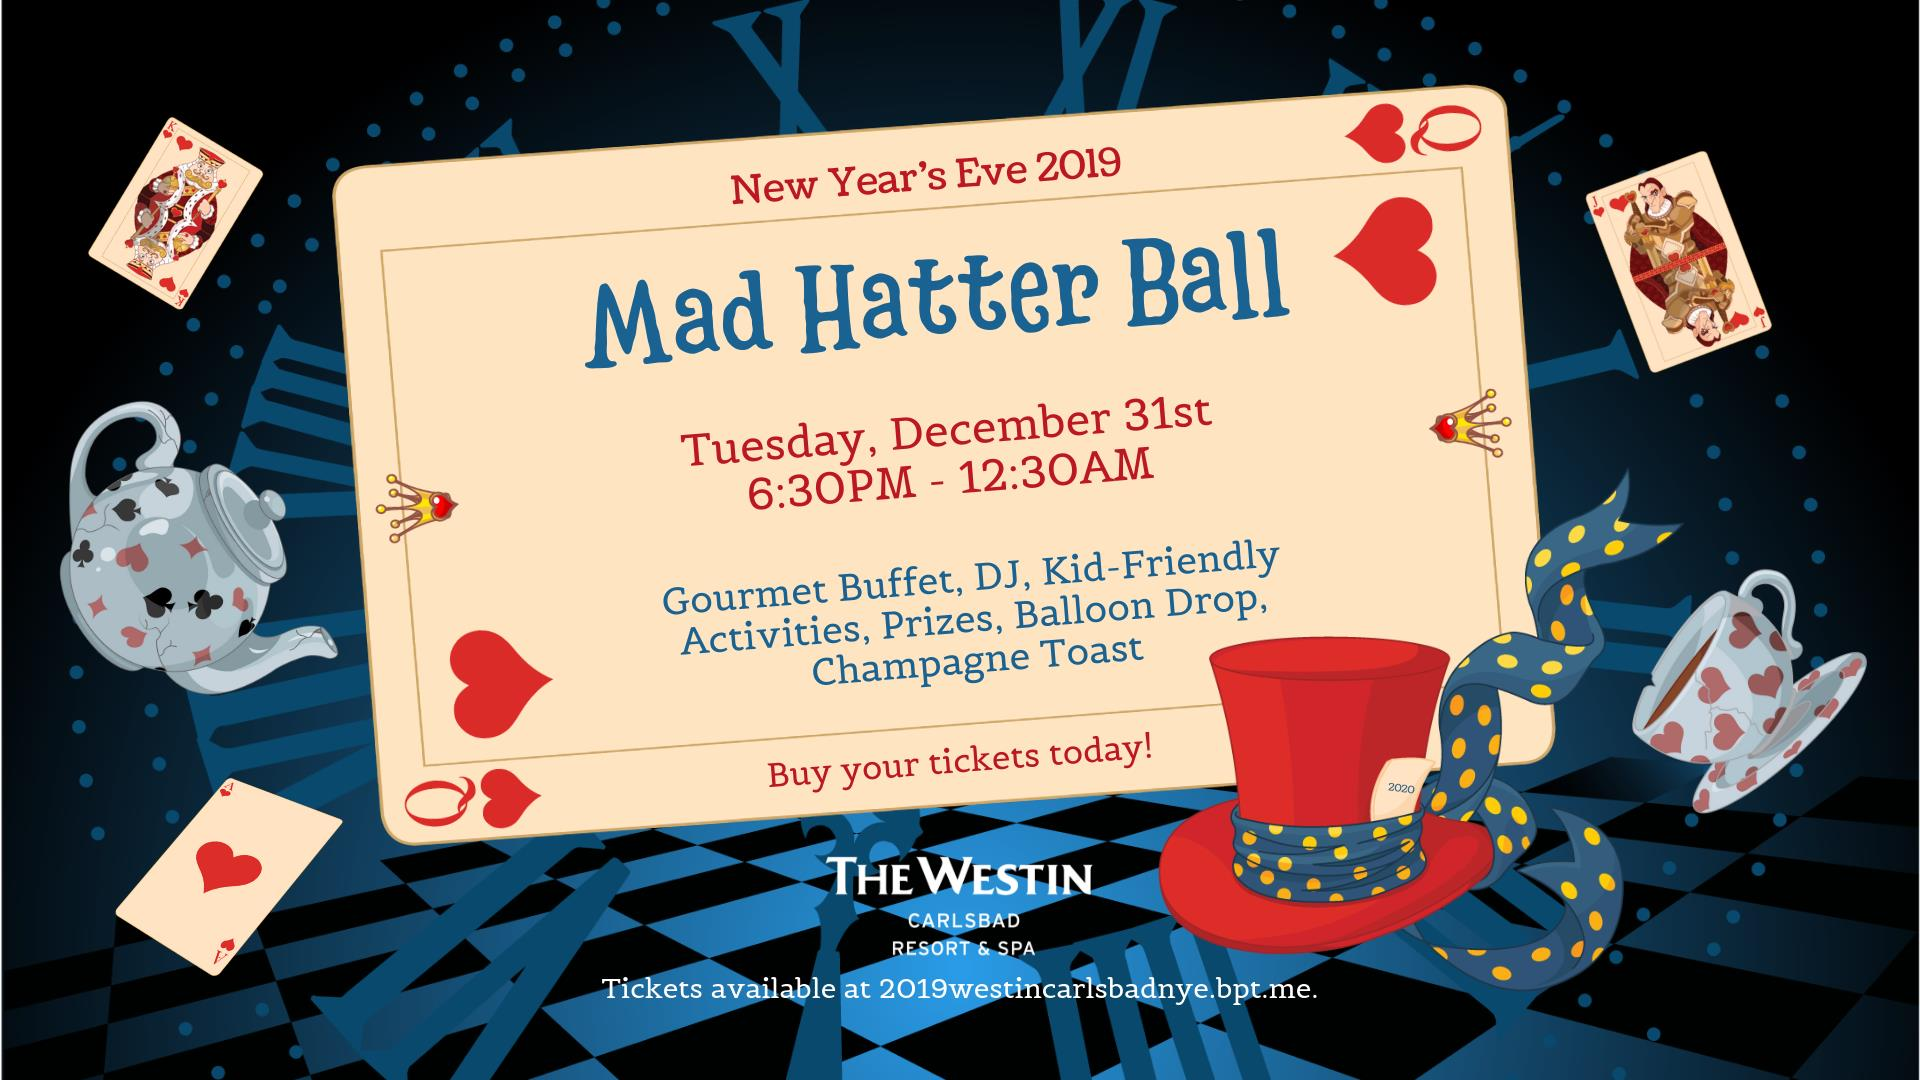 2019 New Year's Eve Mad Hatter Ball